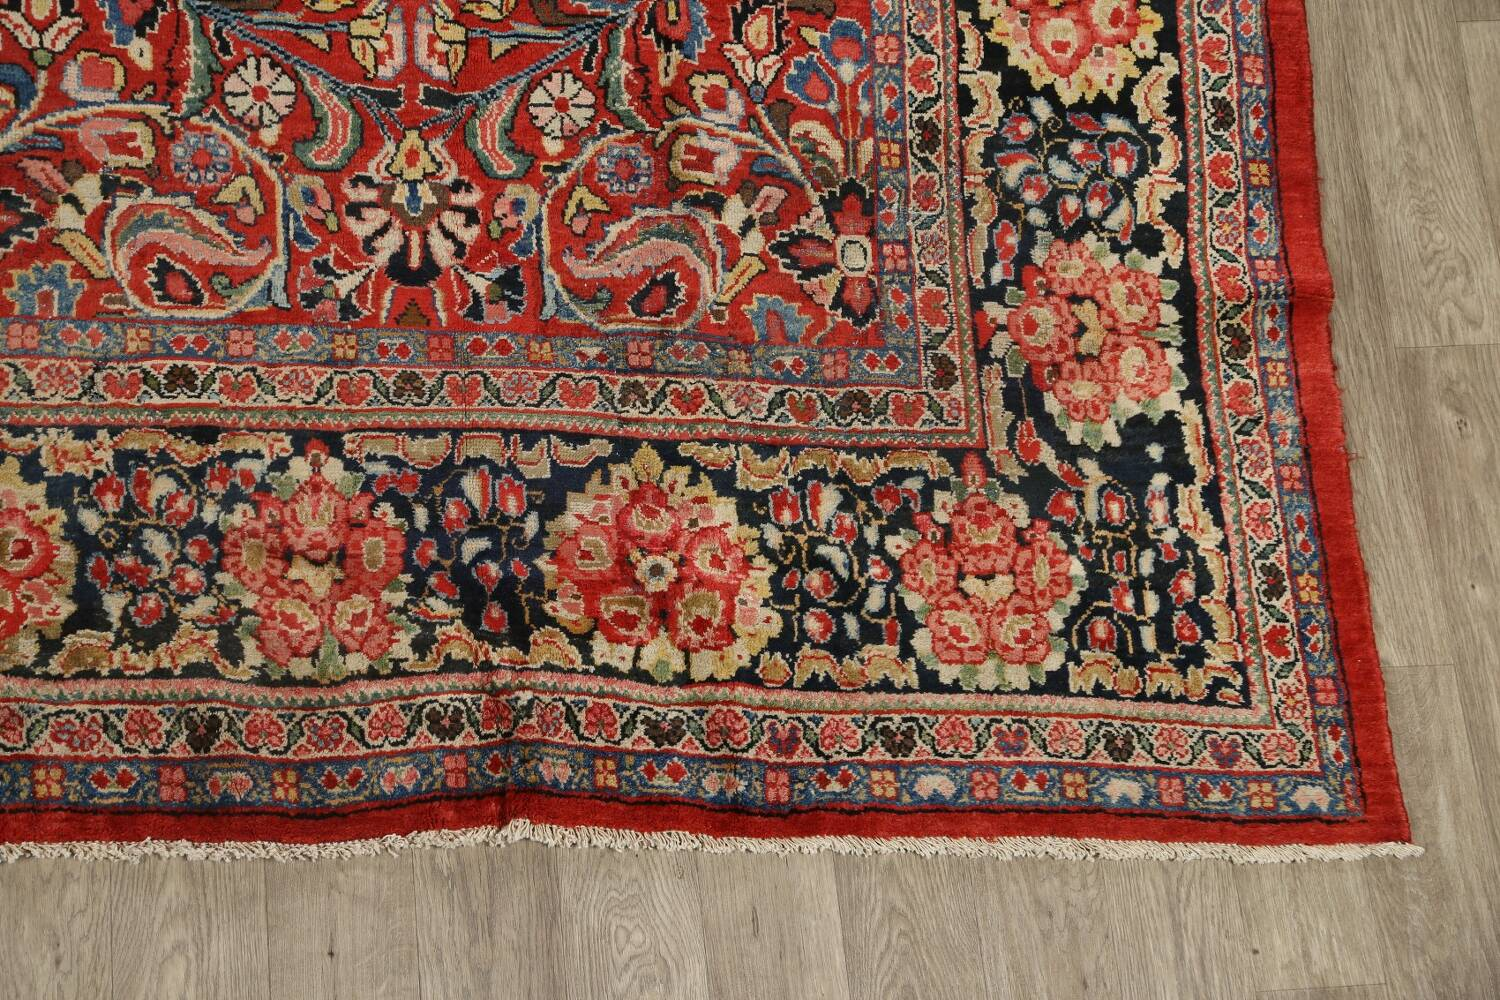 Antique Vegetable Dye Sultanabad Persian Area Rug 10x14 image 5